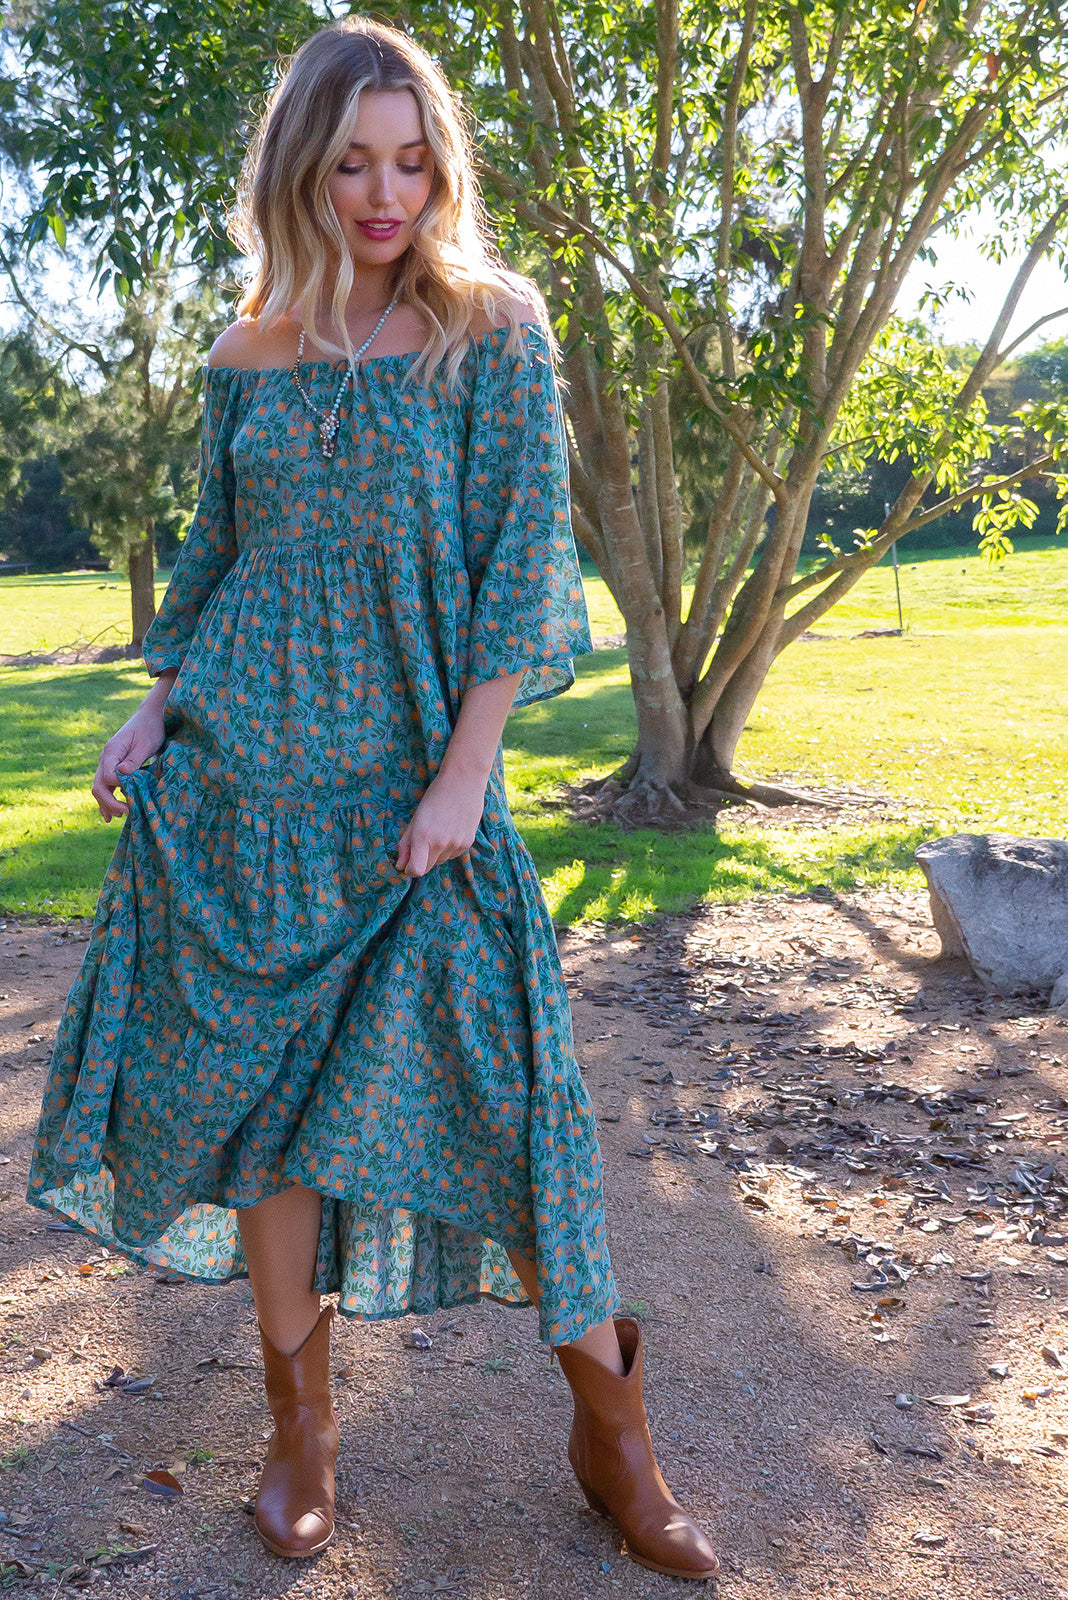 df72ddb3f8 Lizzie Liberty Teal Swing Maxi Dress - Women's teal blue floral cotton/rayon  maxi dress